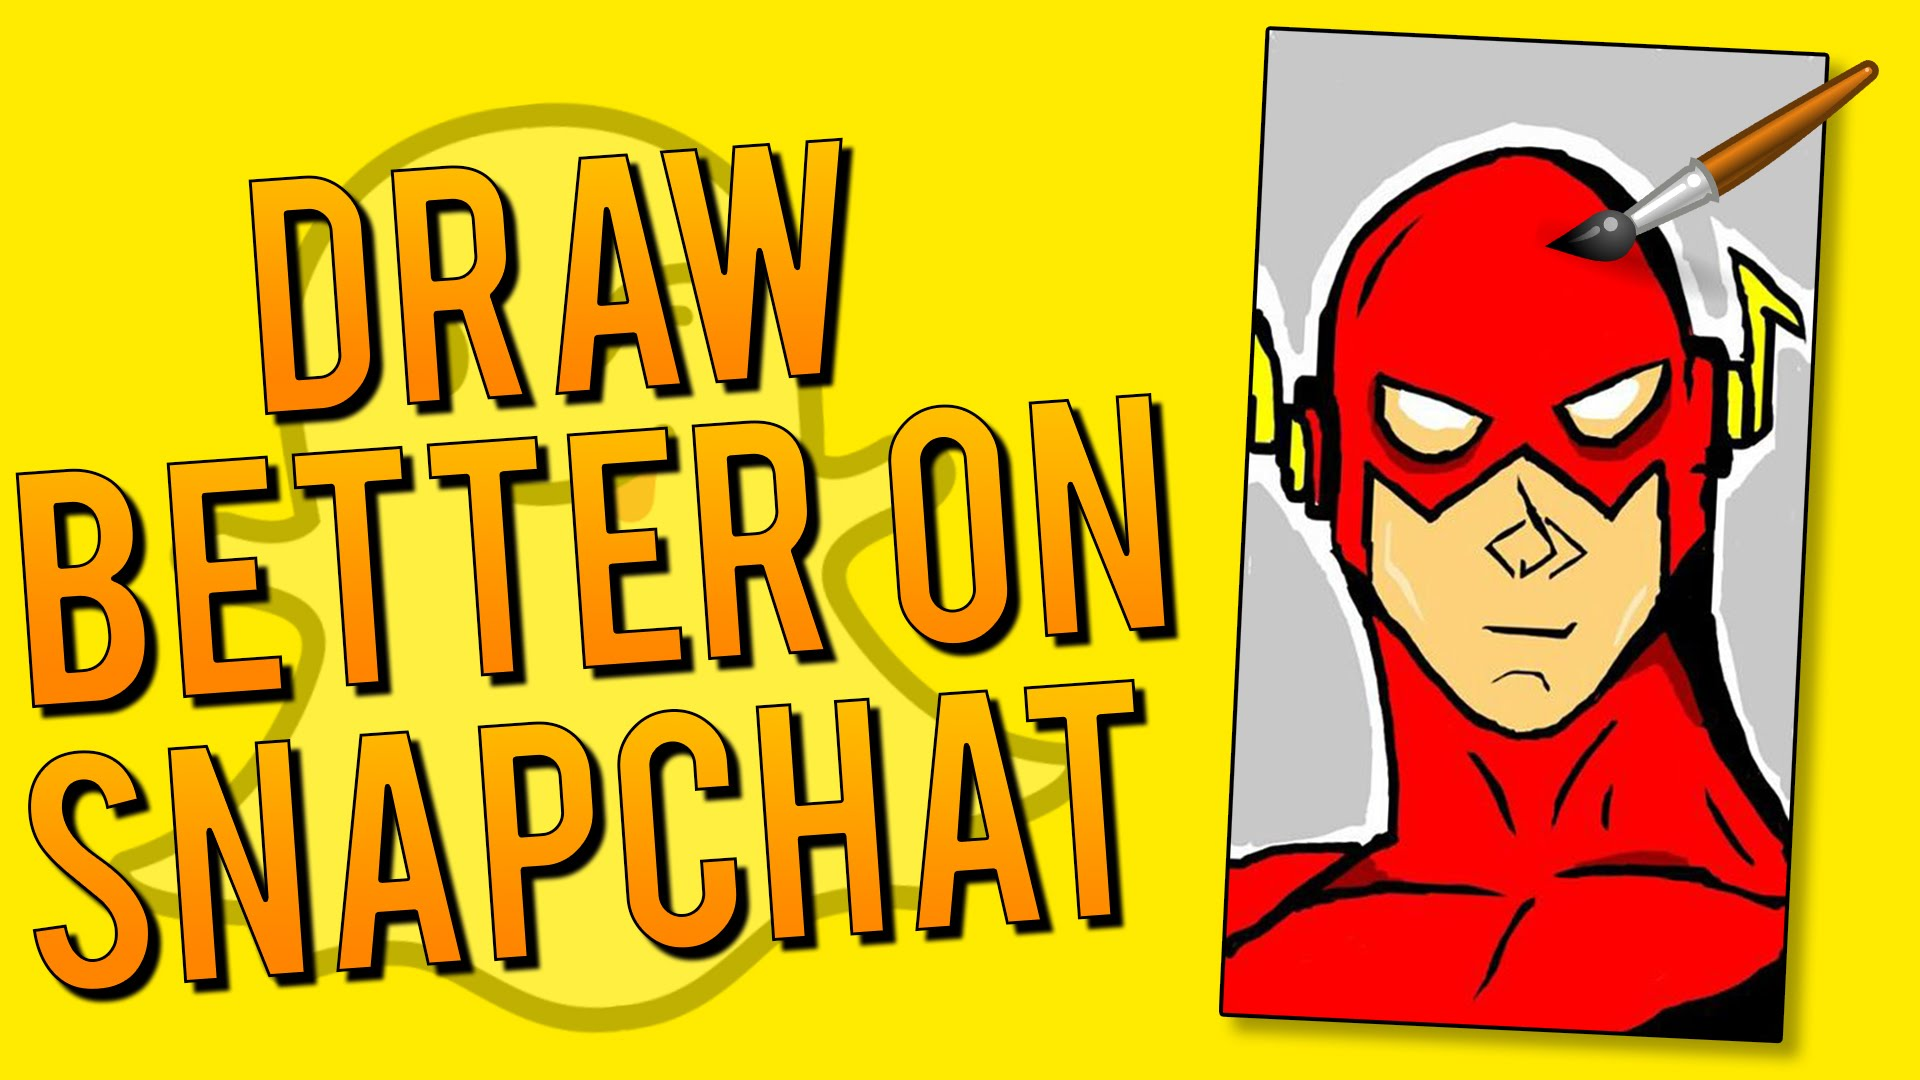 1920x1080 How To Draw Better And More Precise On Snapchat